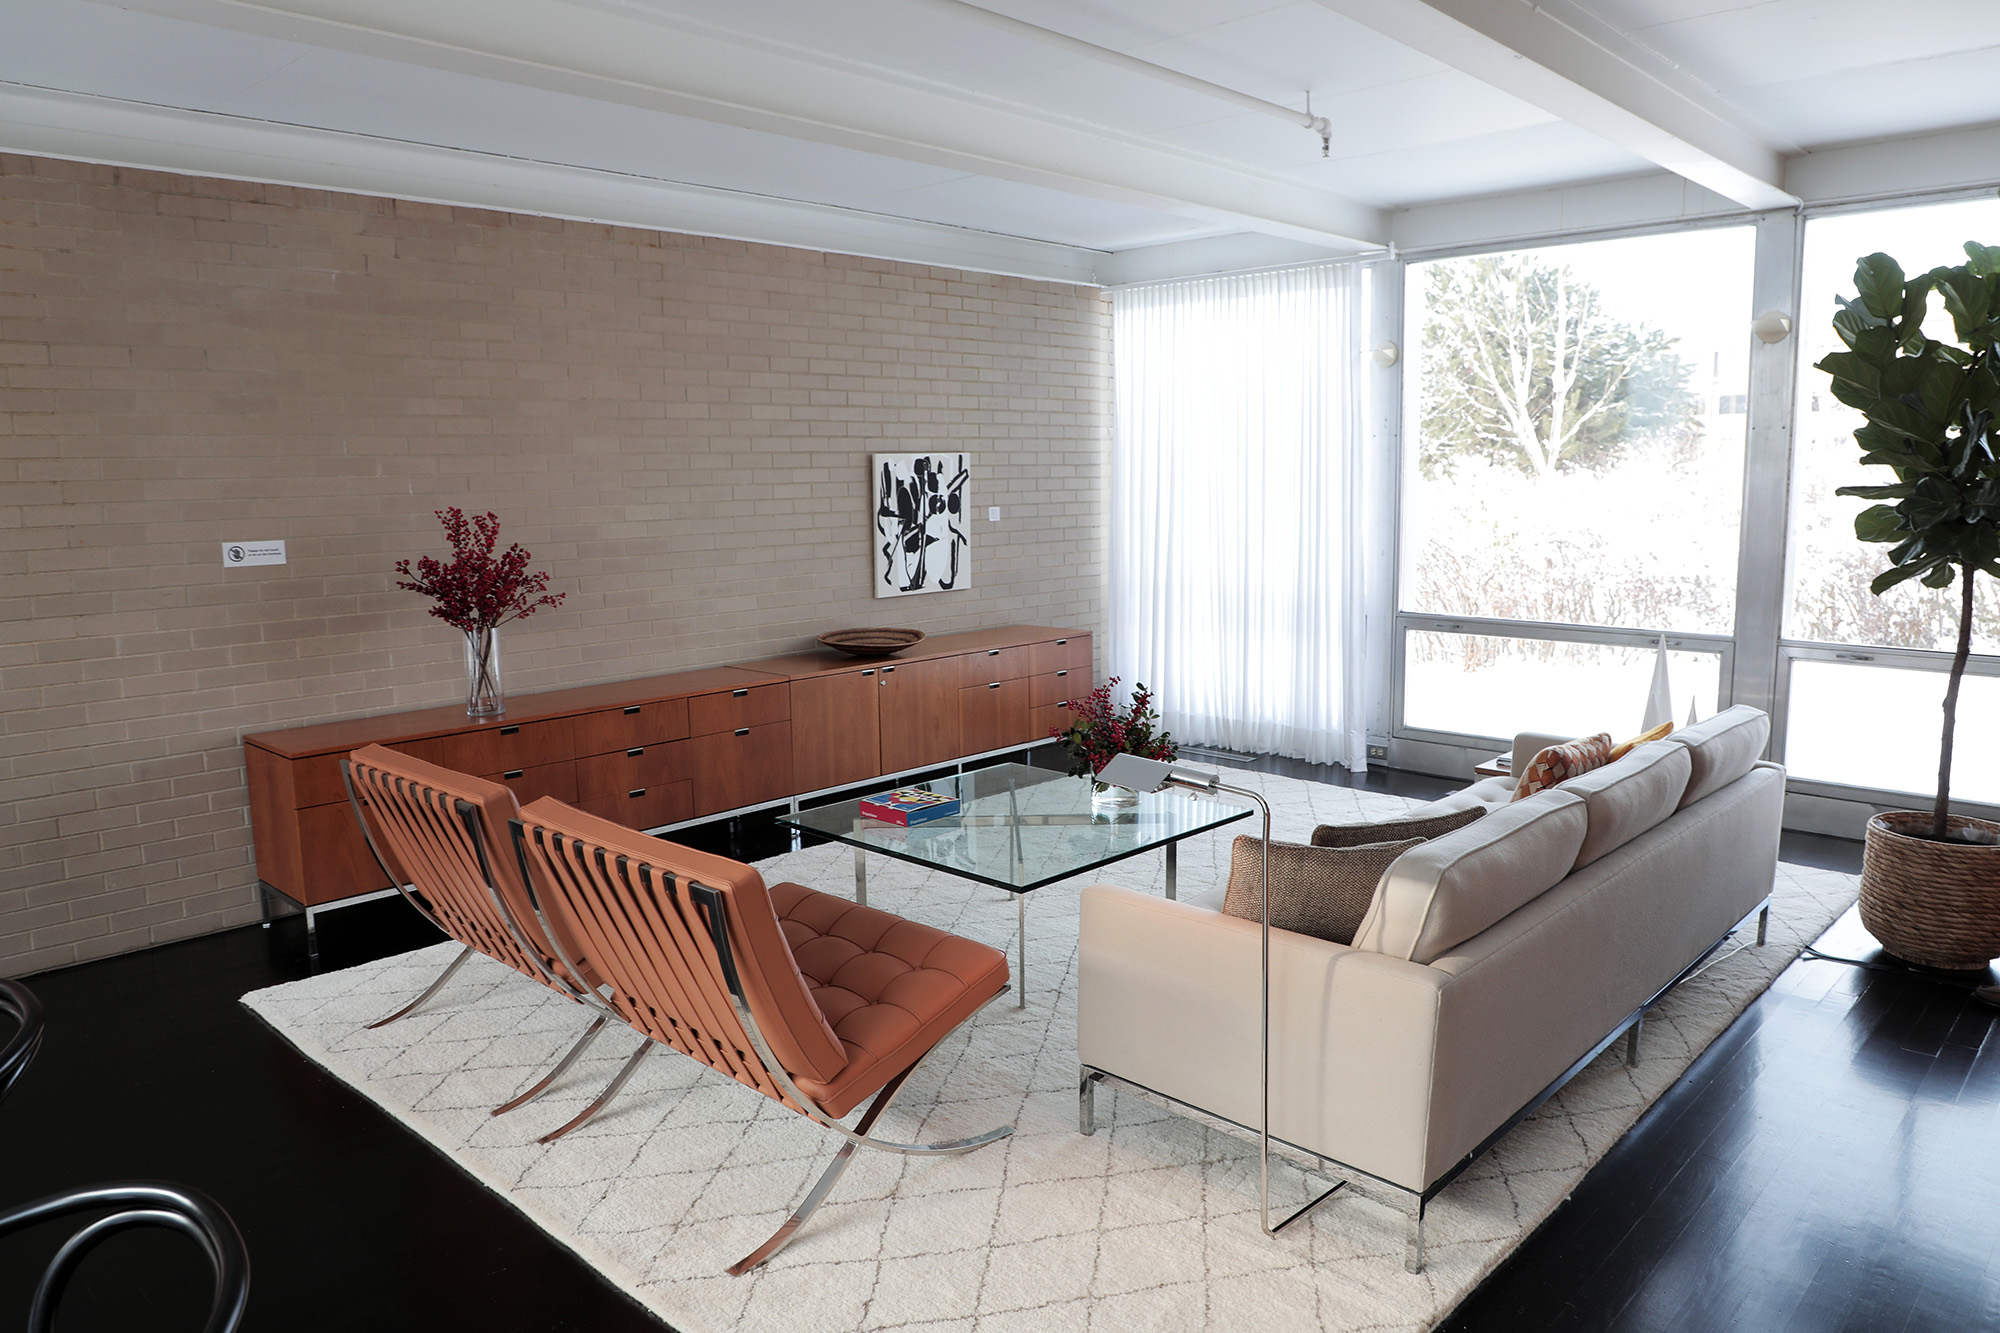 The glass coffee table is intentionally within arm's reach of the brown leather Barcelona chairs and couch. (Arionne Nettles/WBEZ)